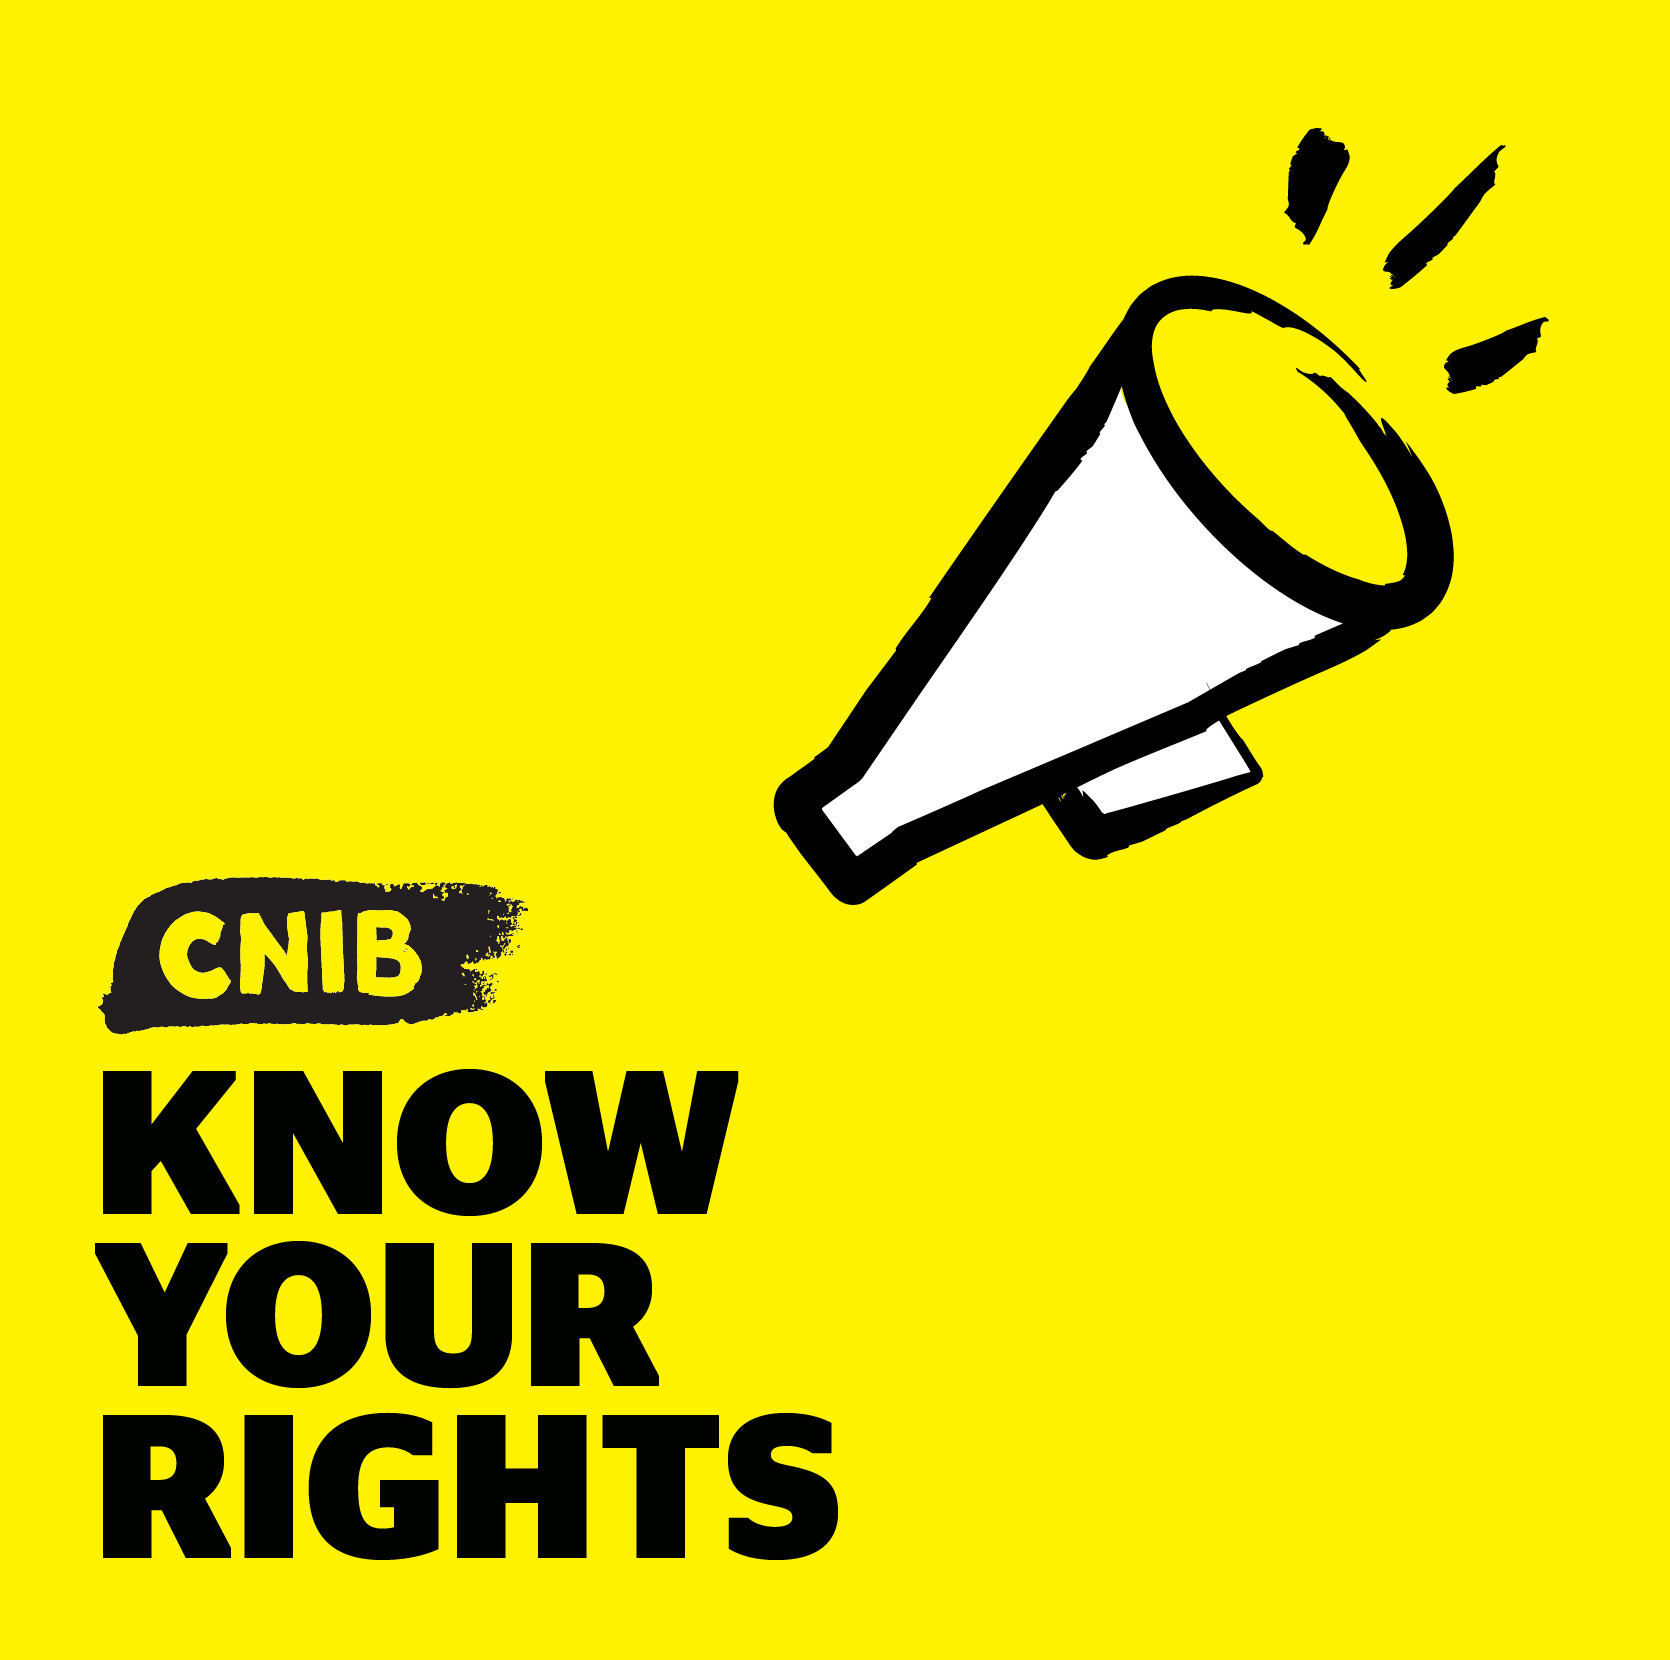 CNIB Know Your Rights podcast logo. An illustration of a megaphone. Text: Know Your Rights.